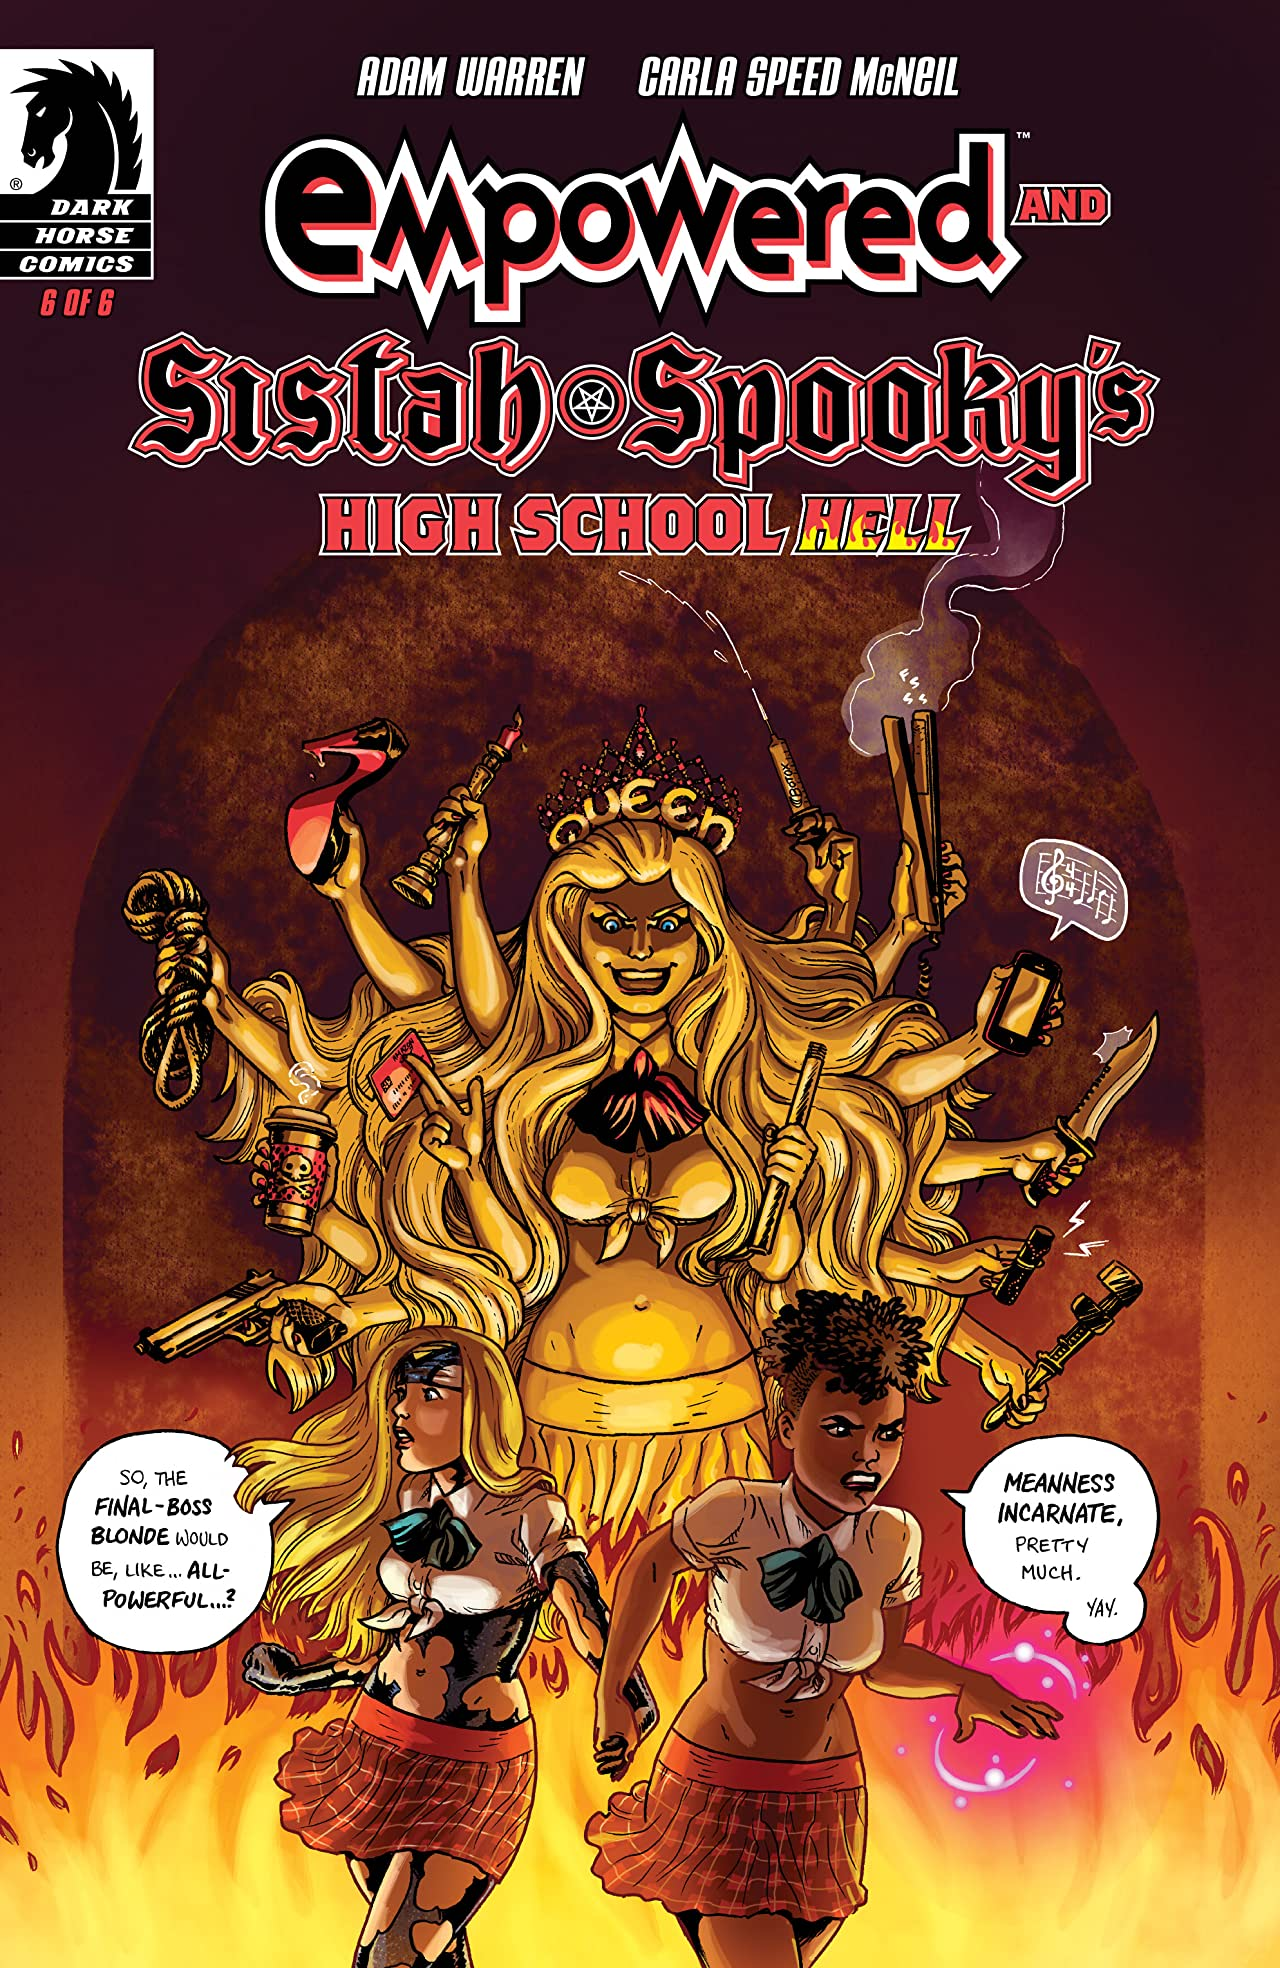 Empowered and Sistah Spooky's High School Hell No.6